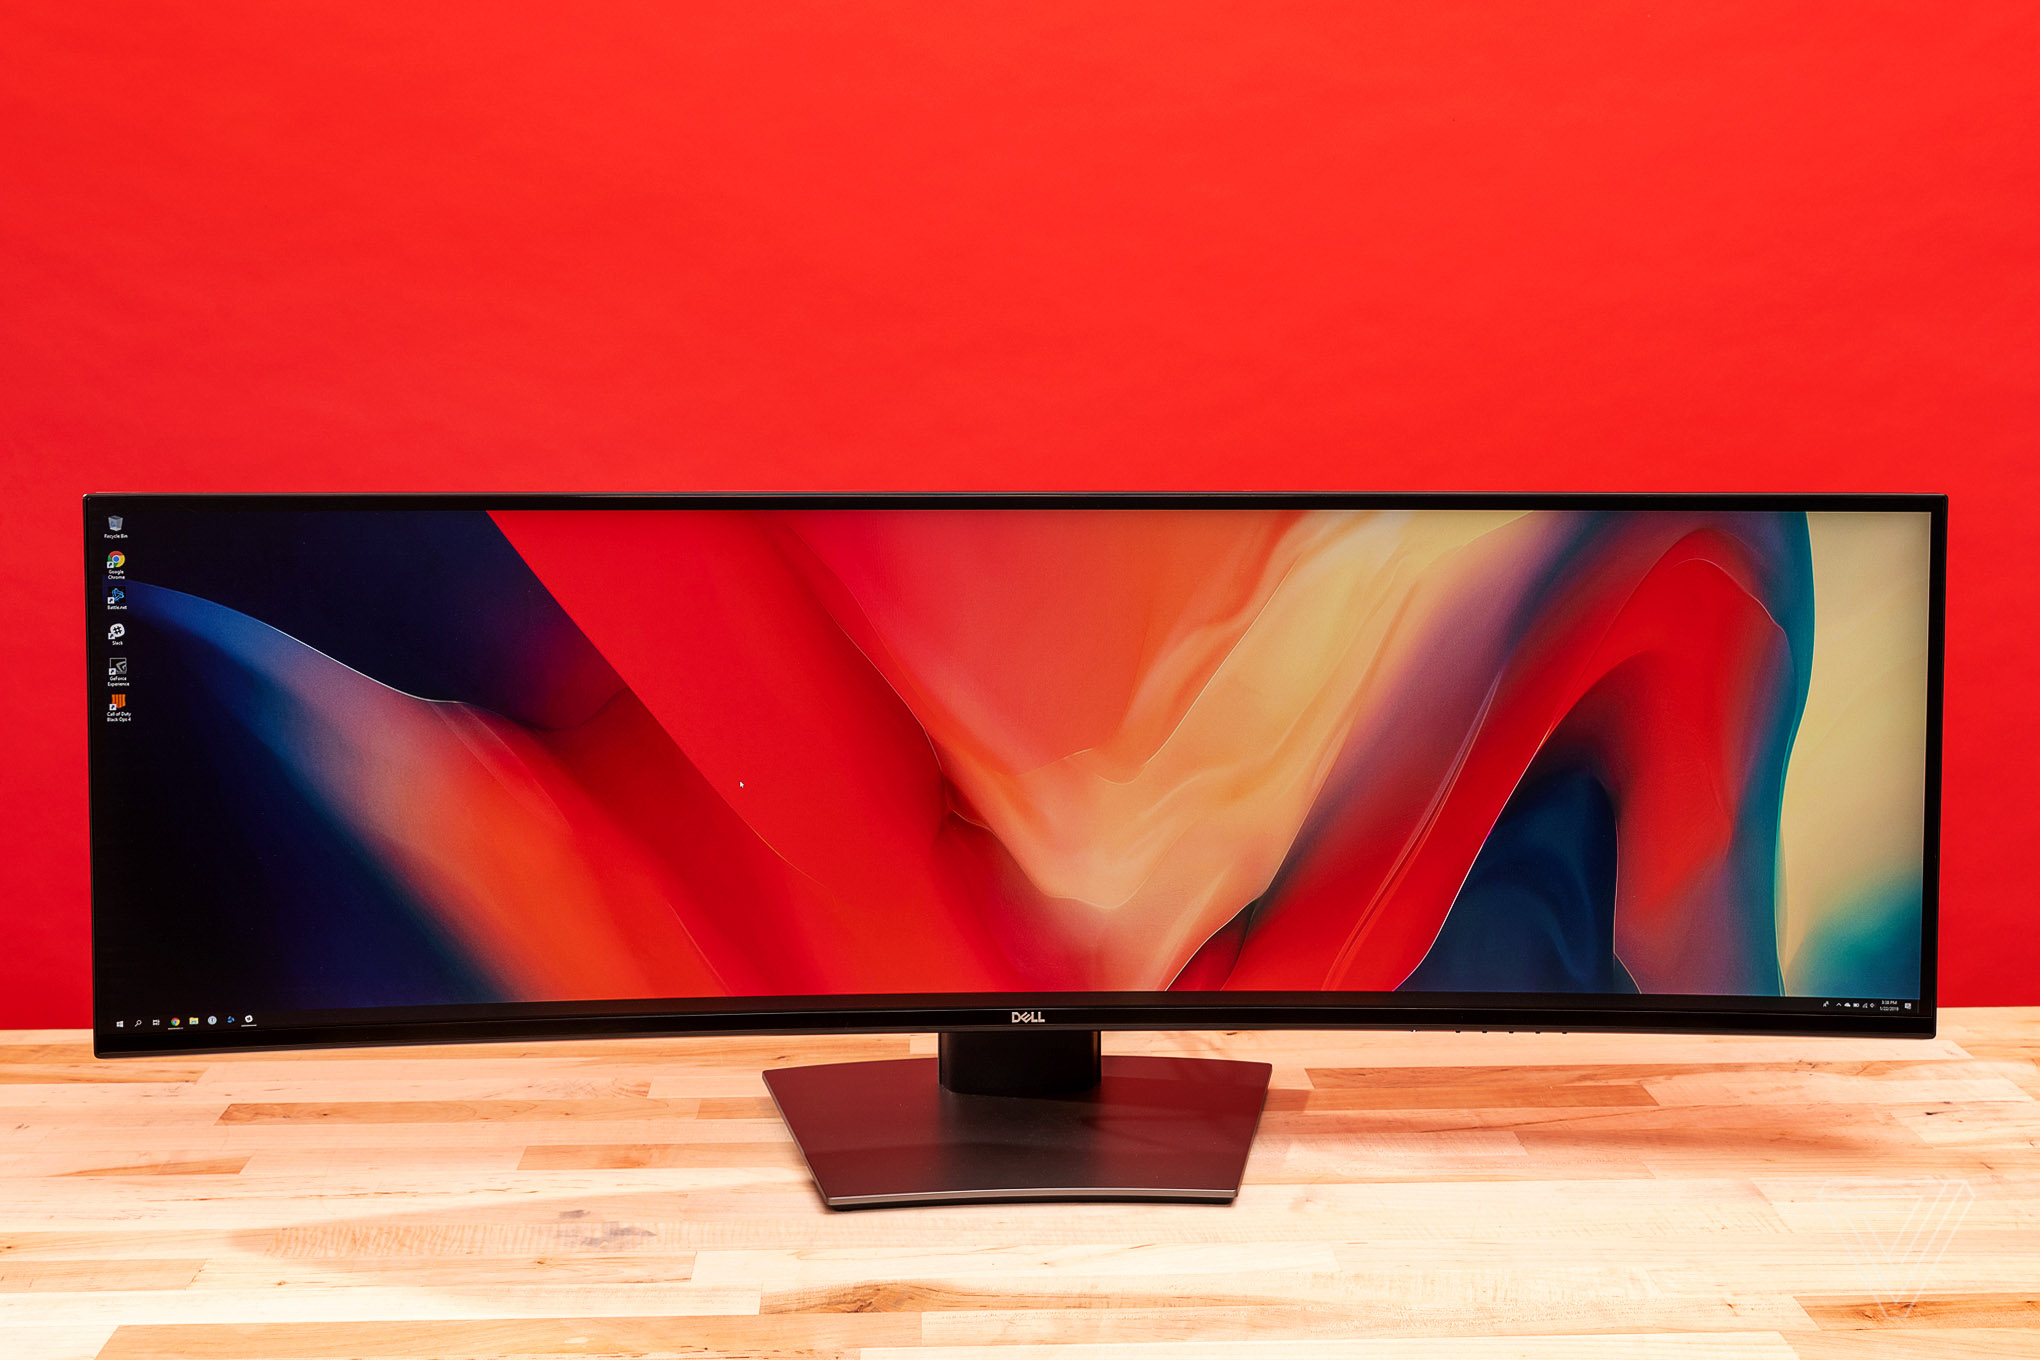 A 49-inch ultrawide monitor is extravagant, ridiculous, and